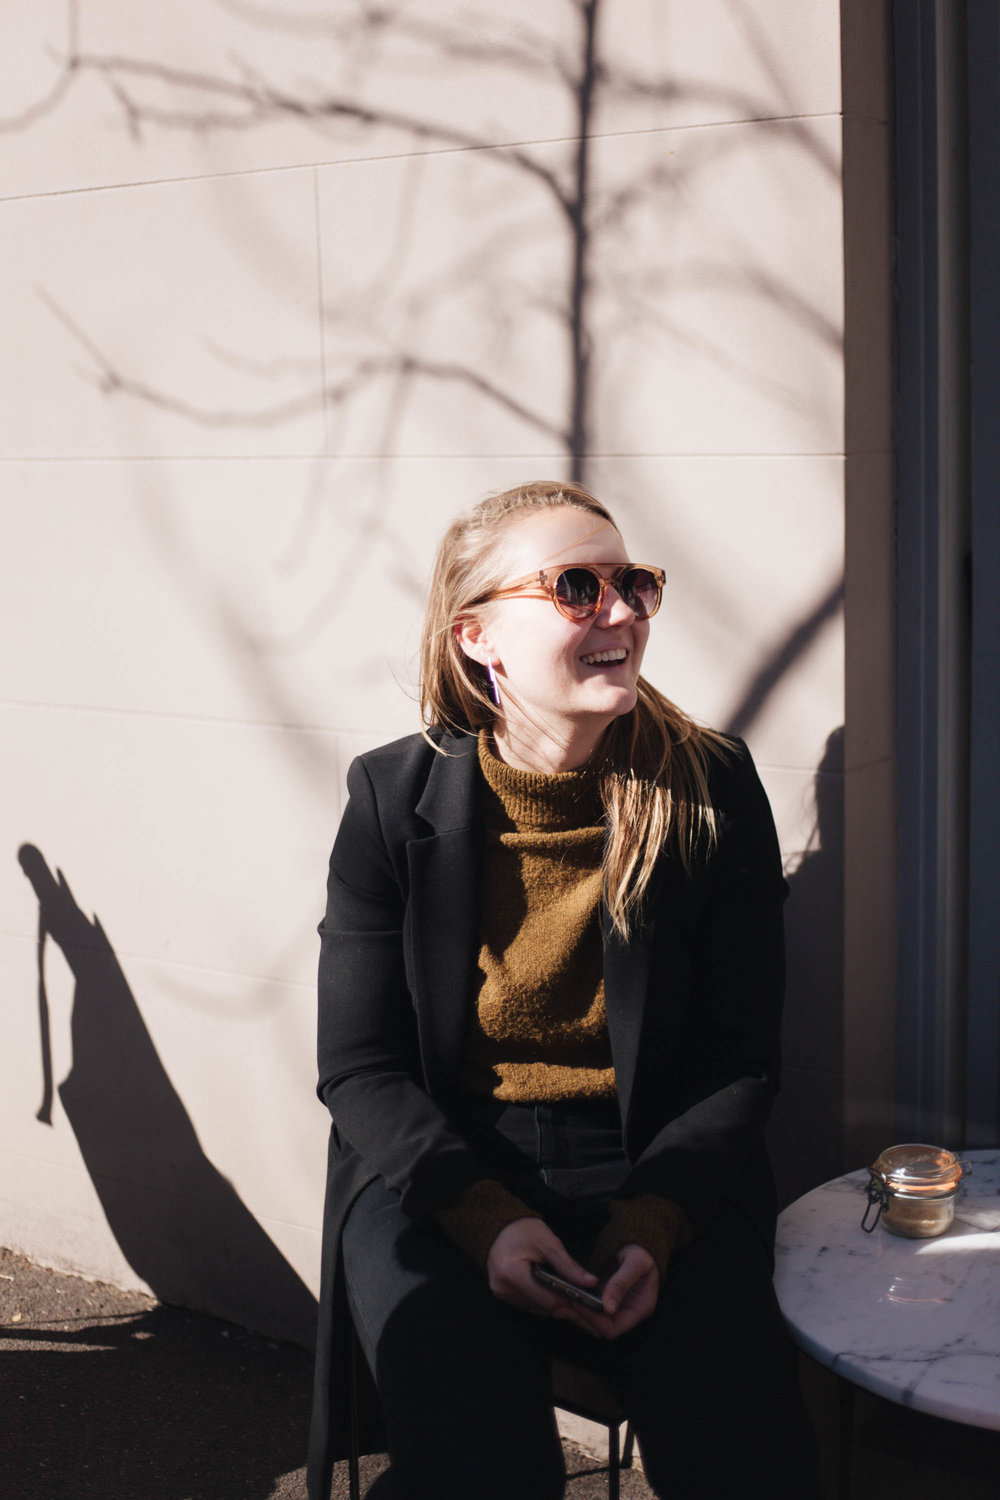 Working with other creatives by Felicity Farncomb